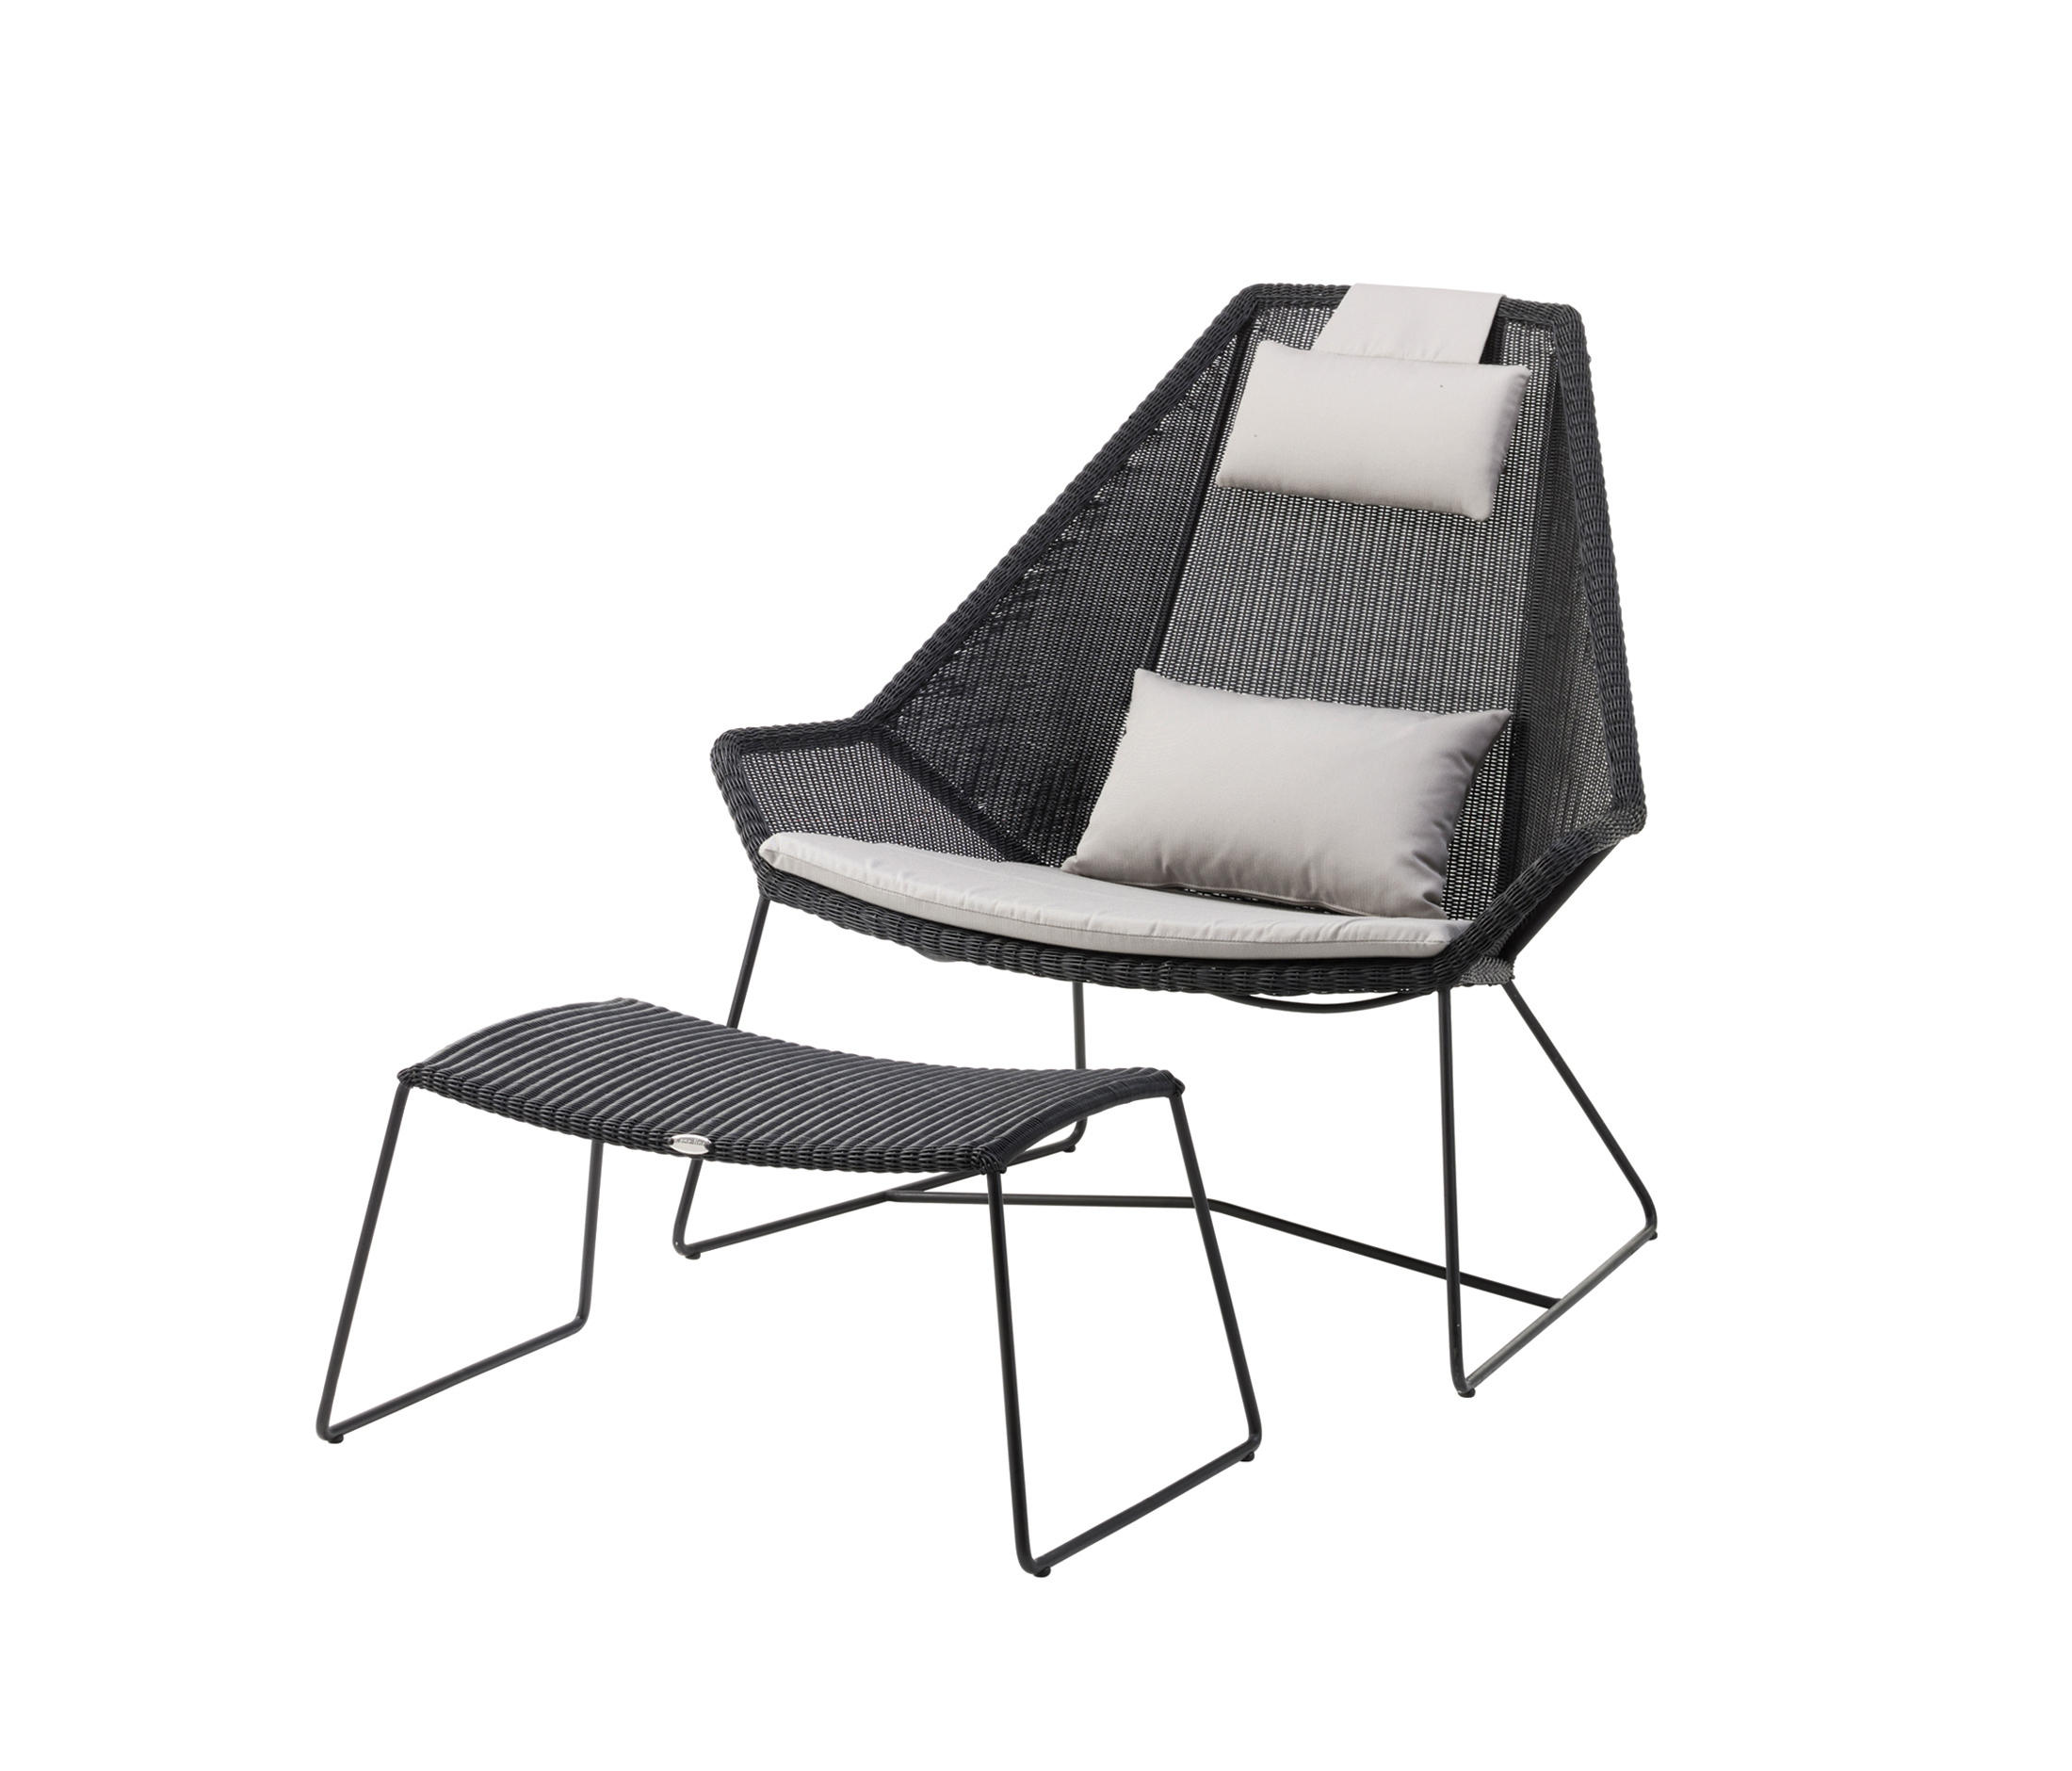 breeze highback chair garden armchairs from cane line architonic. Black Bedroom Furniture Sets. Home Design Ideas